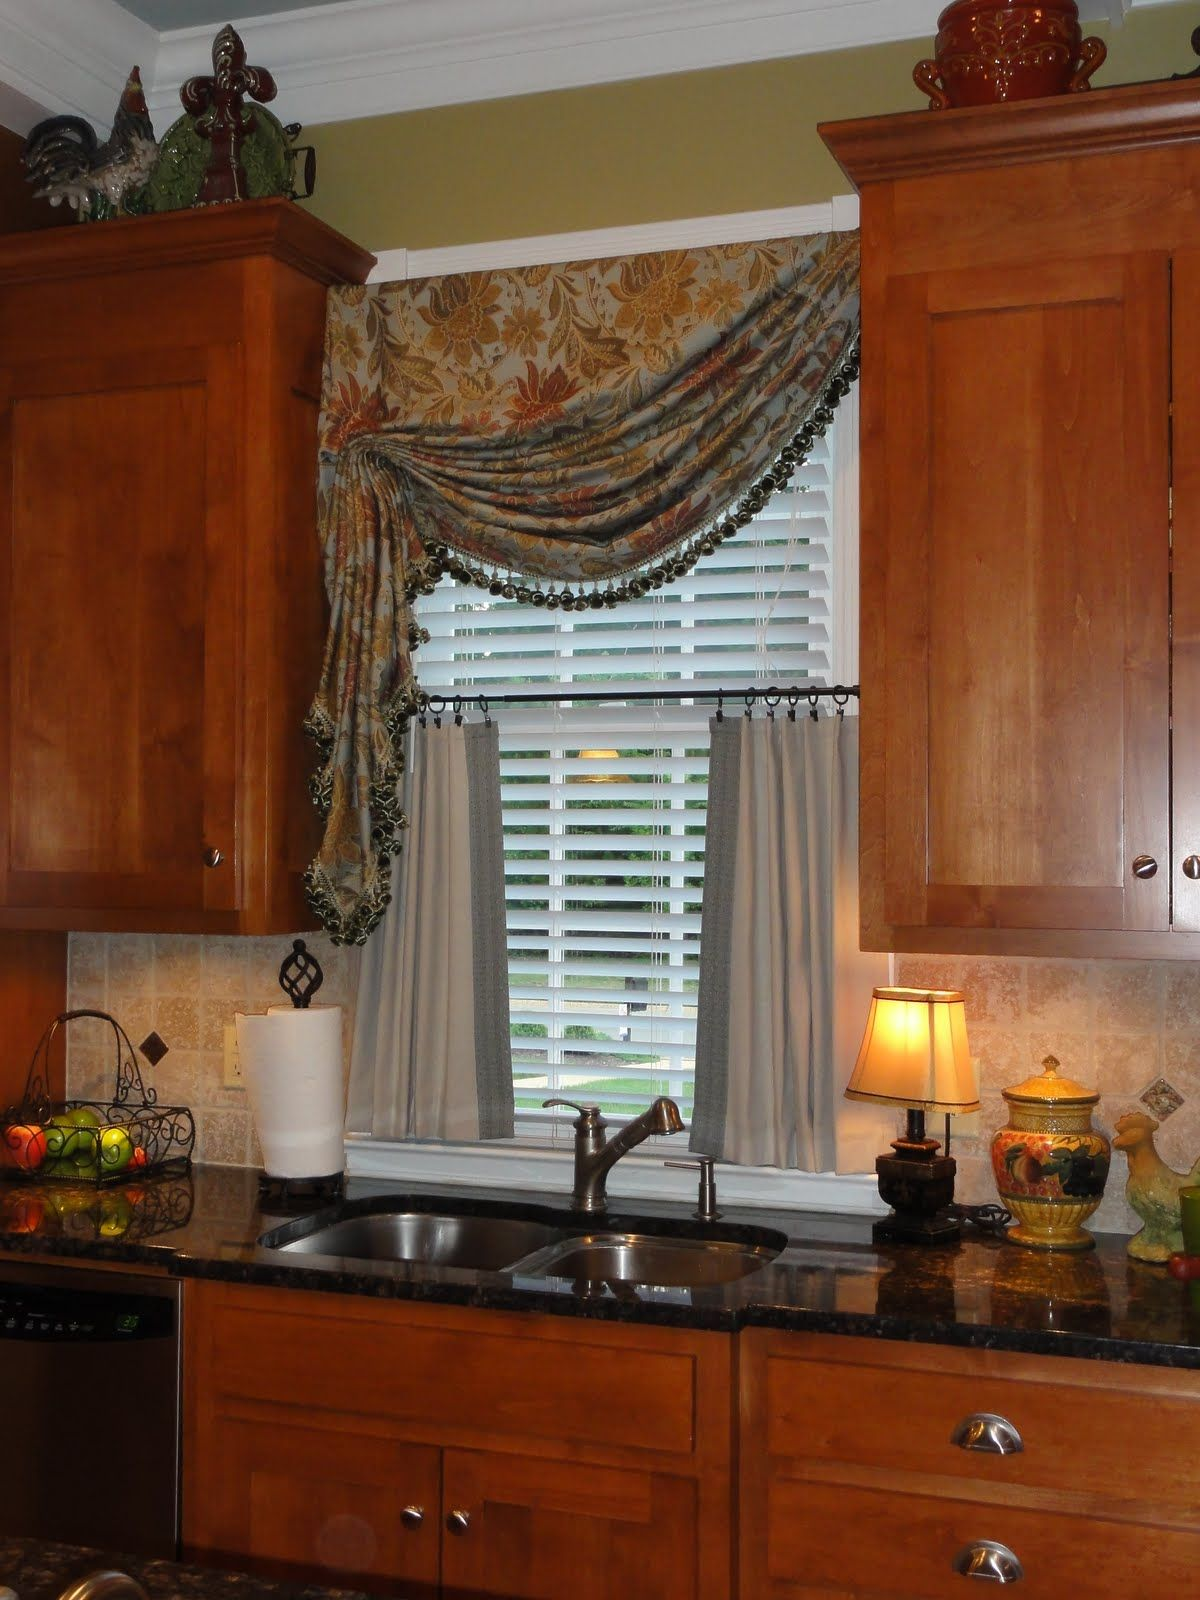 Kitchen cafe curtain patterns - Cafe Curtains Style Window Treatments Simply By Sabrina Kitchen Window Treatment Add On